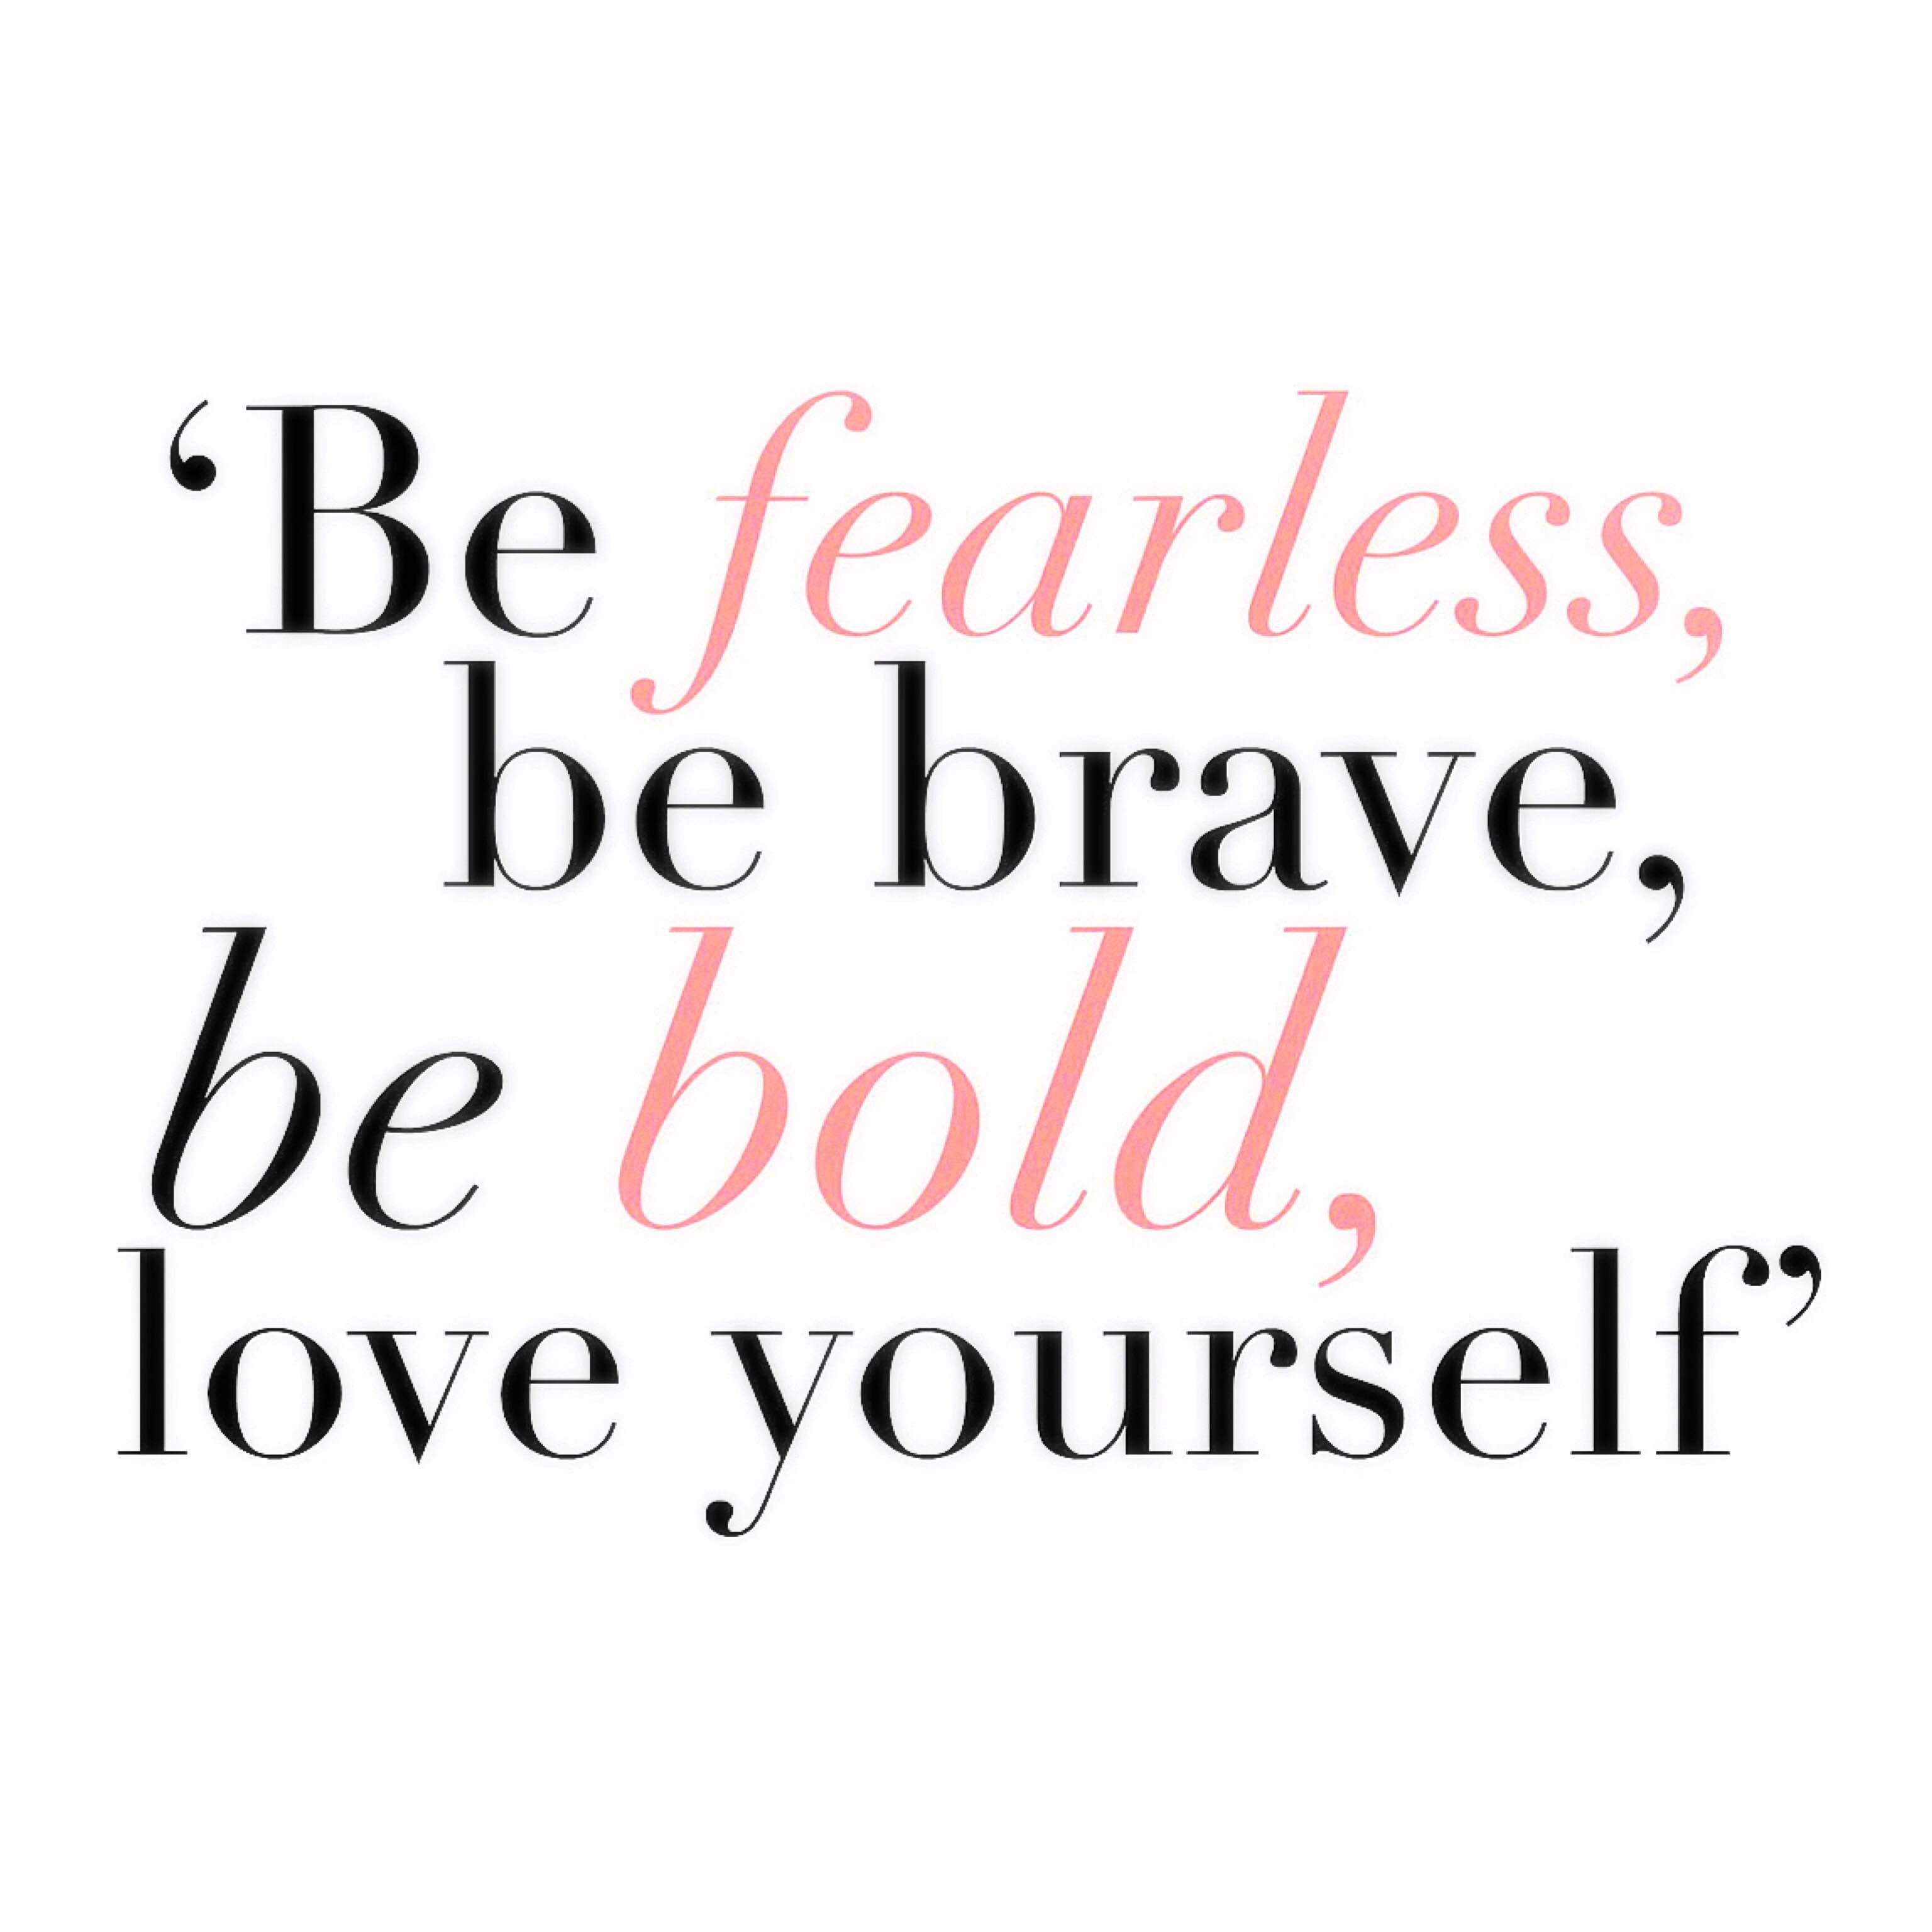 Women Power Quotes Happy Humpday To All Fearless Brave & Bold Women Out There Don